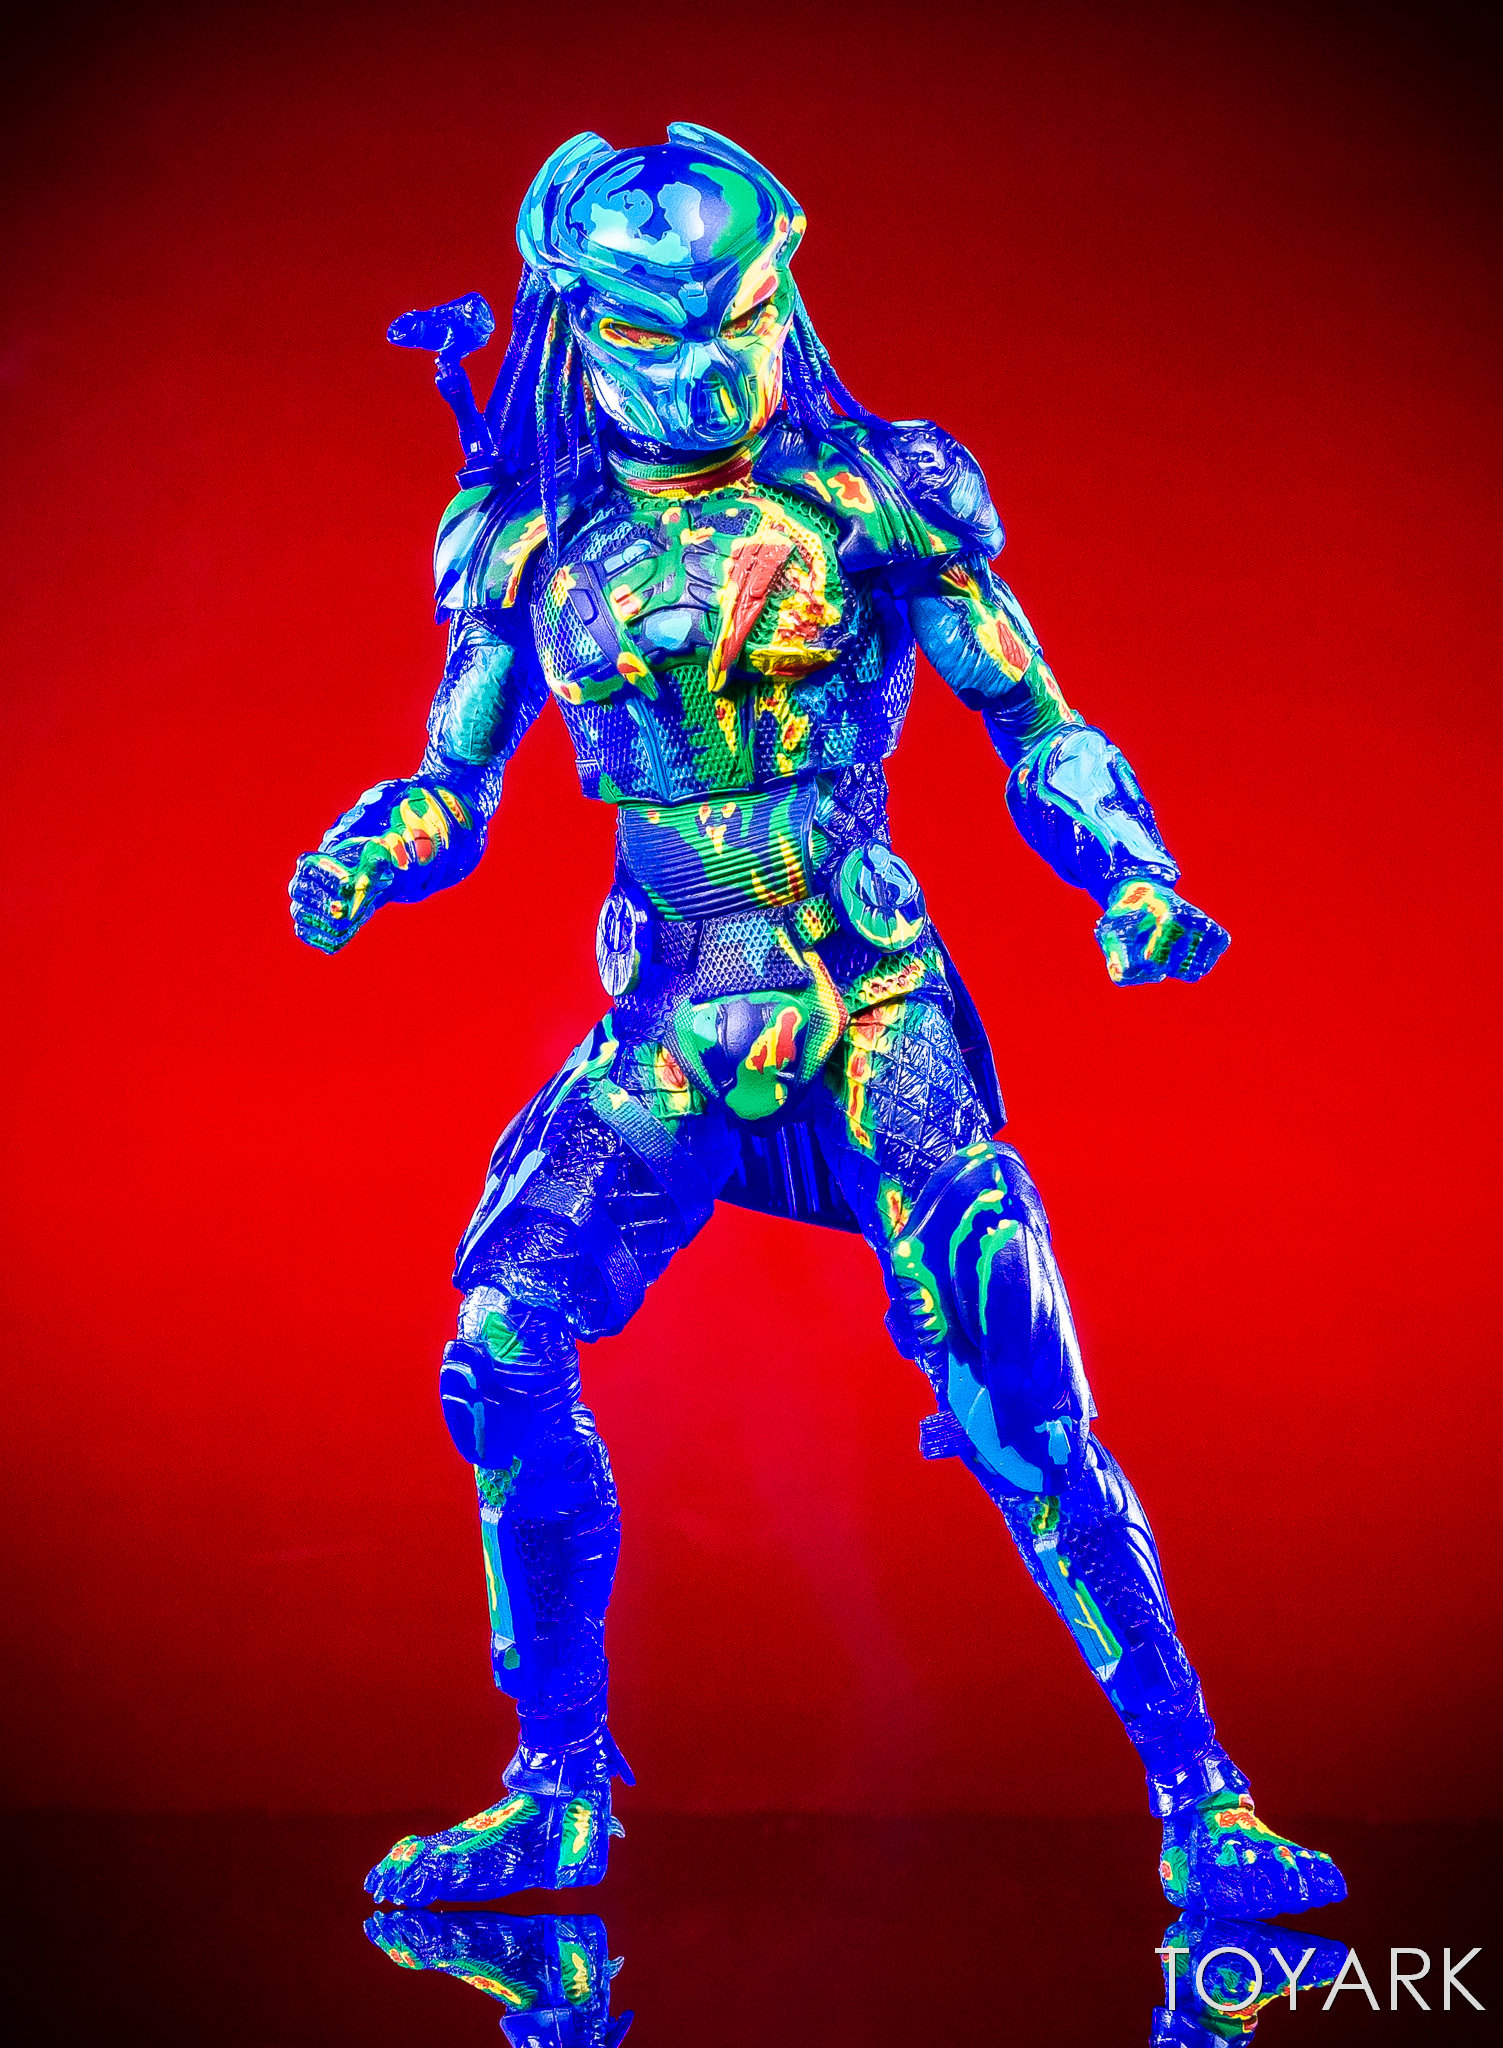 https://news.toyark.com/wp-content/uploads/sites/4/2018/12/NECA-Predator-2018-Thermal-Vision-Predator-006.jpg